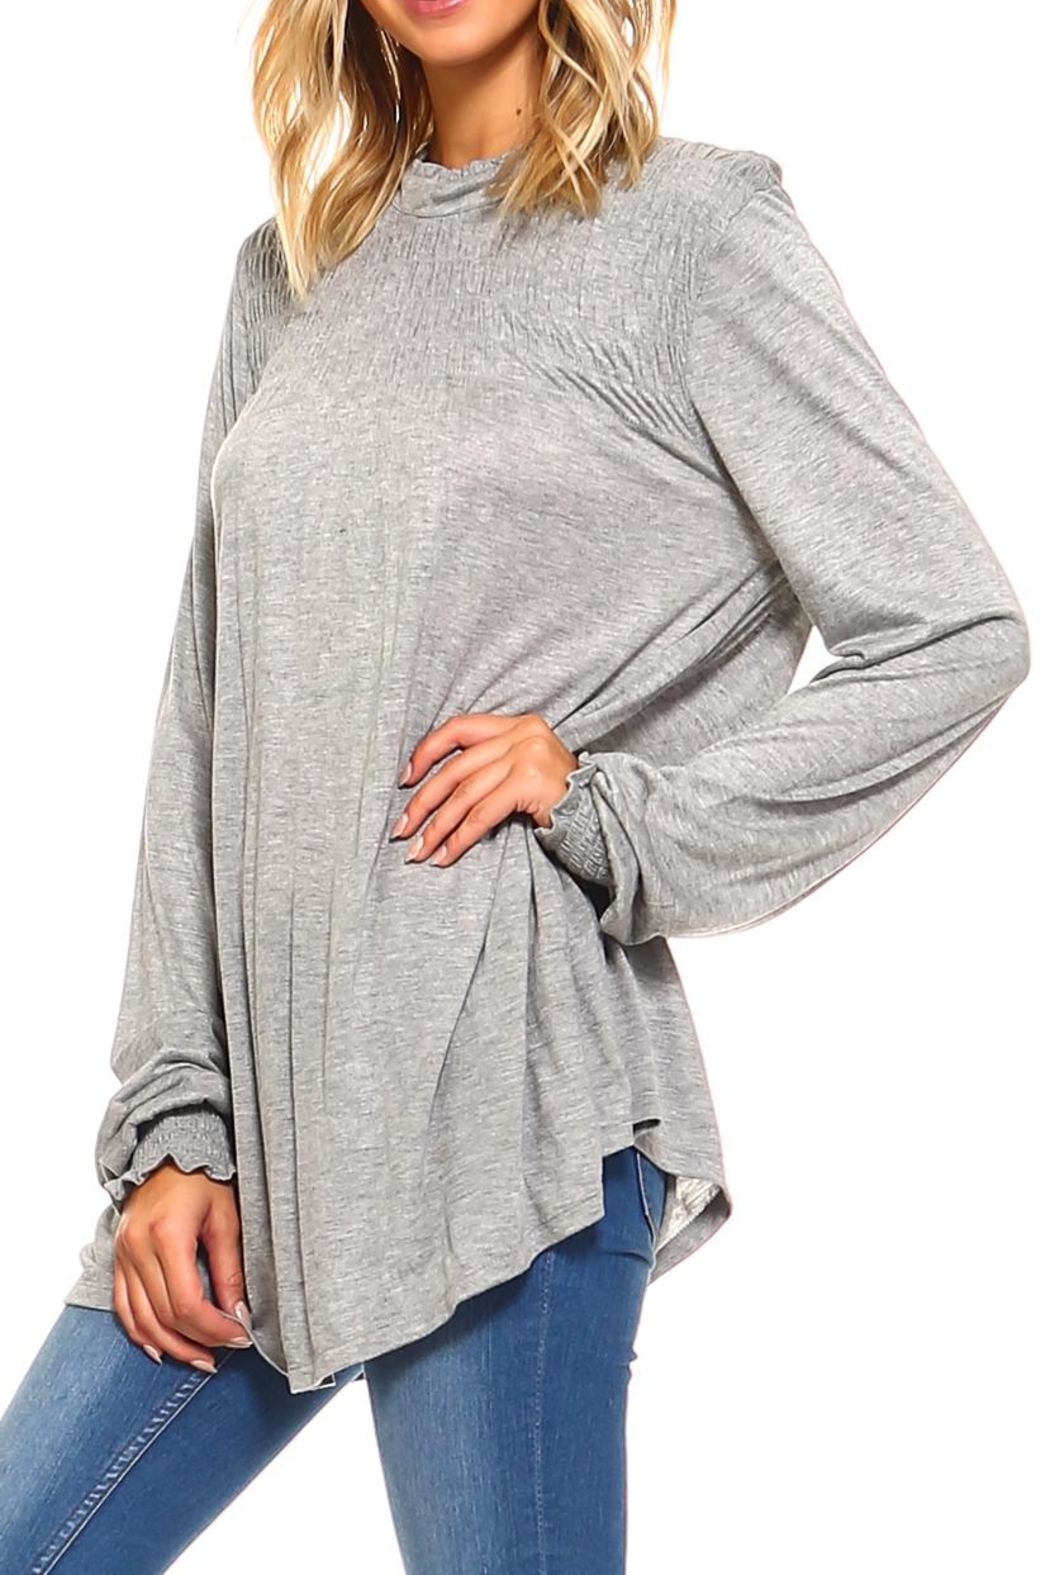 rxb Solid Knit Top - Front Cropped Image